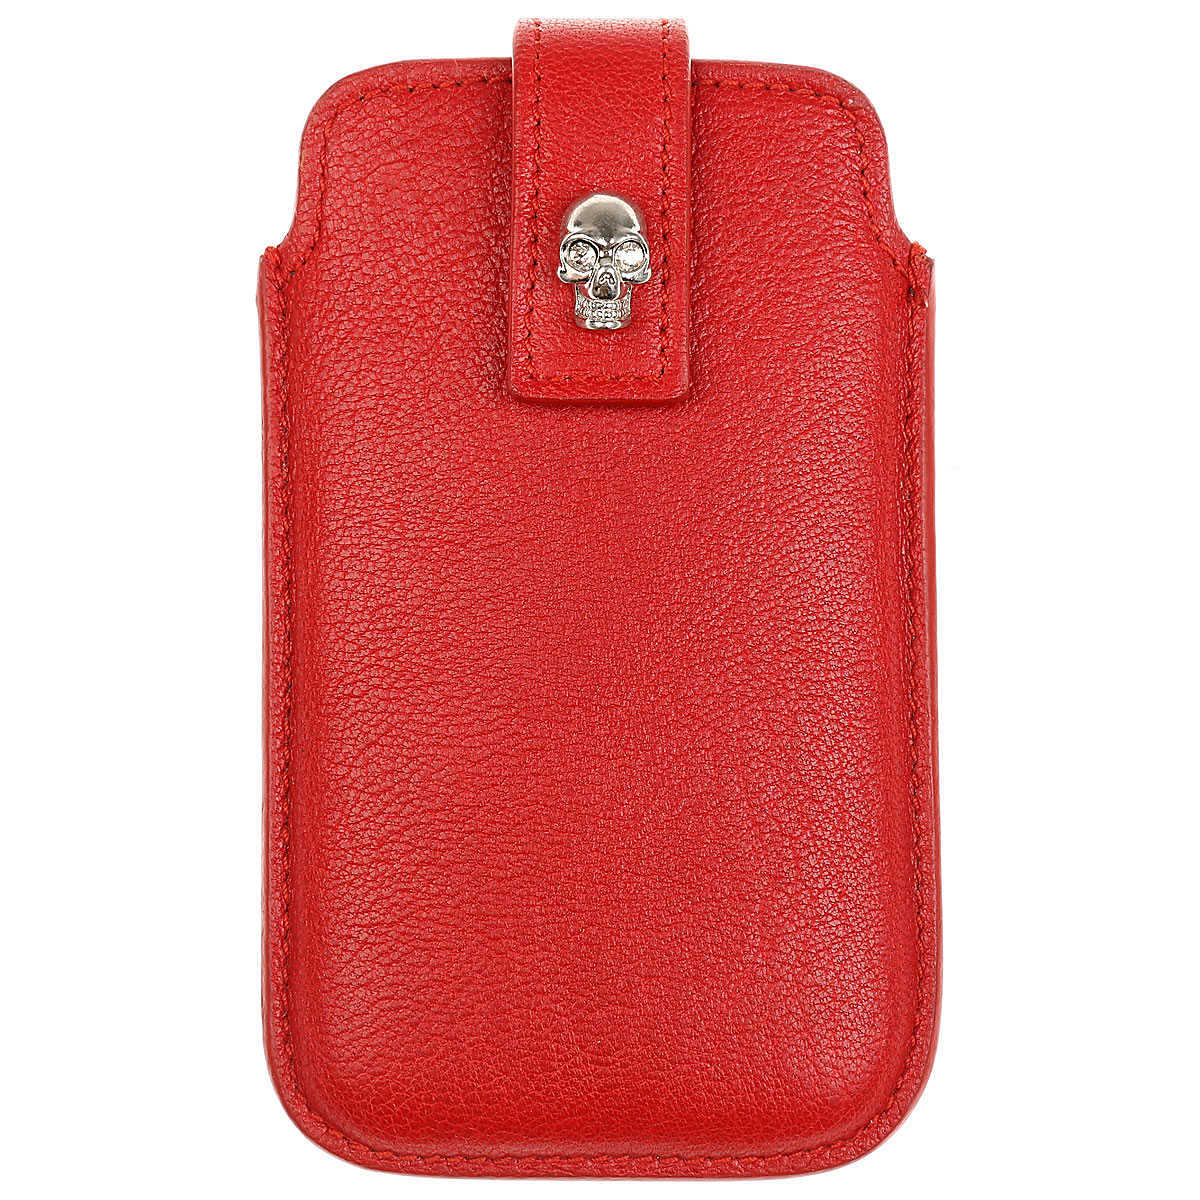 Alexander McQueen Womens Wallets On Sale in Outlet Red - GOOFASH